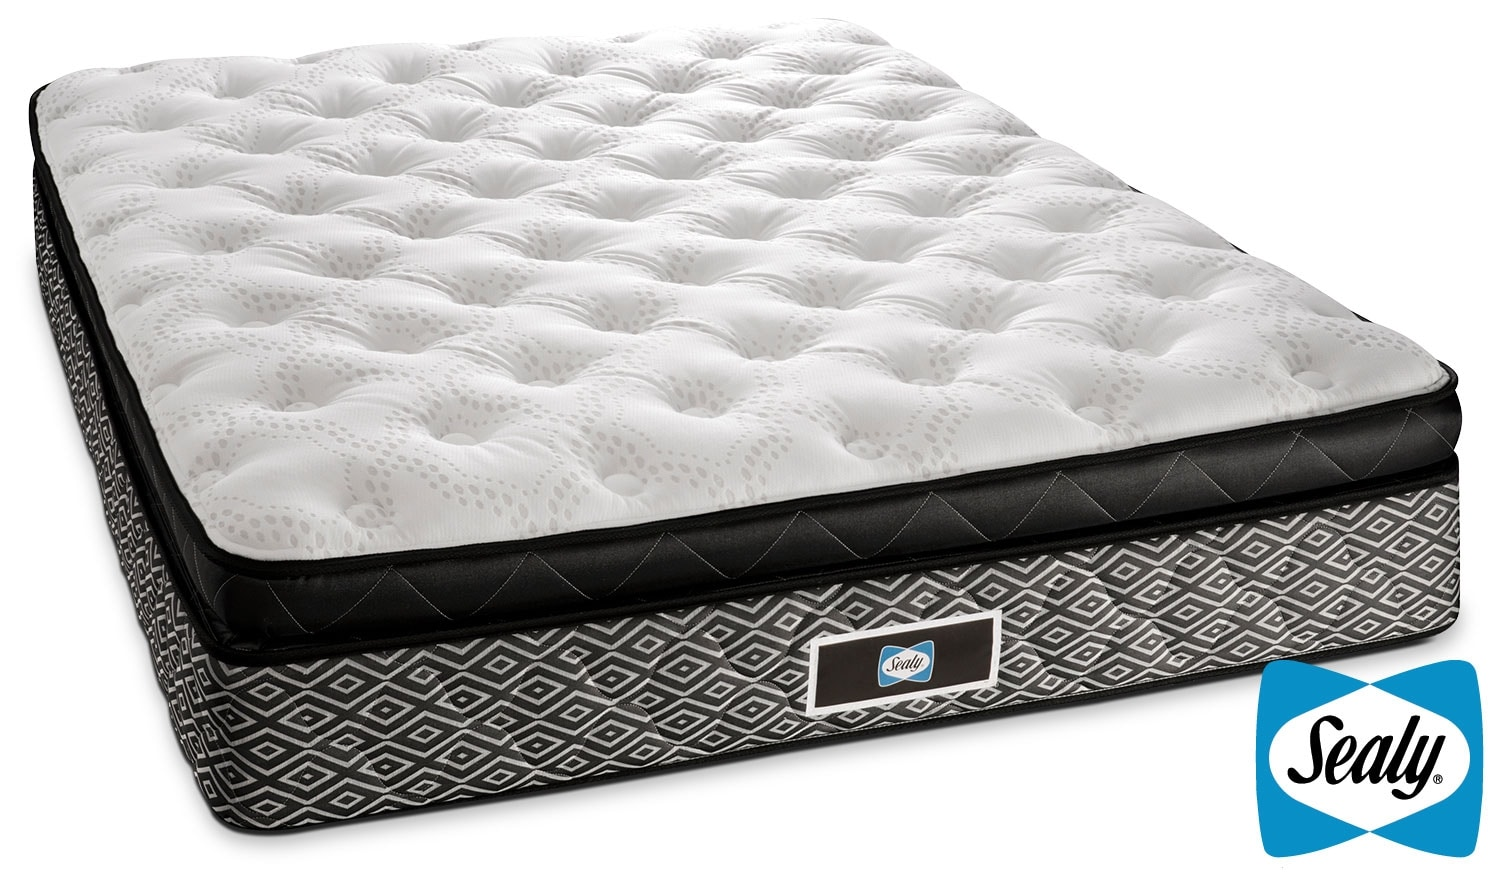 Mattresses and Bedding - Sealy Echo Firm Twin Mattress